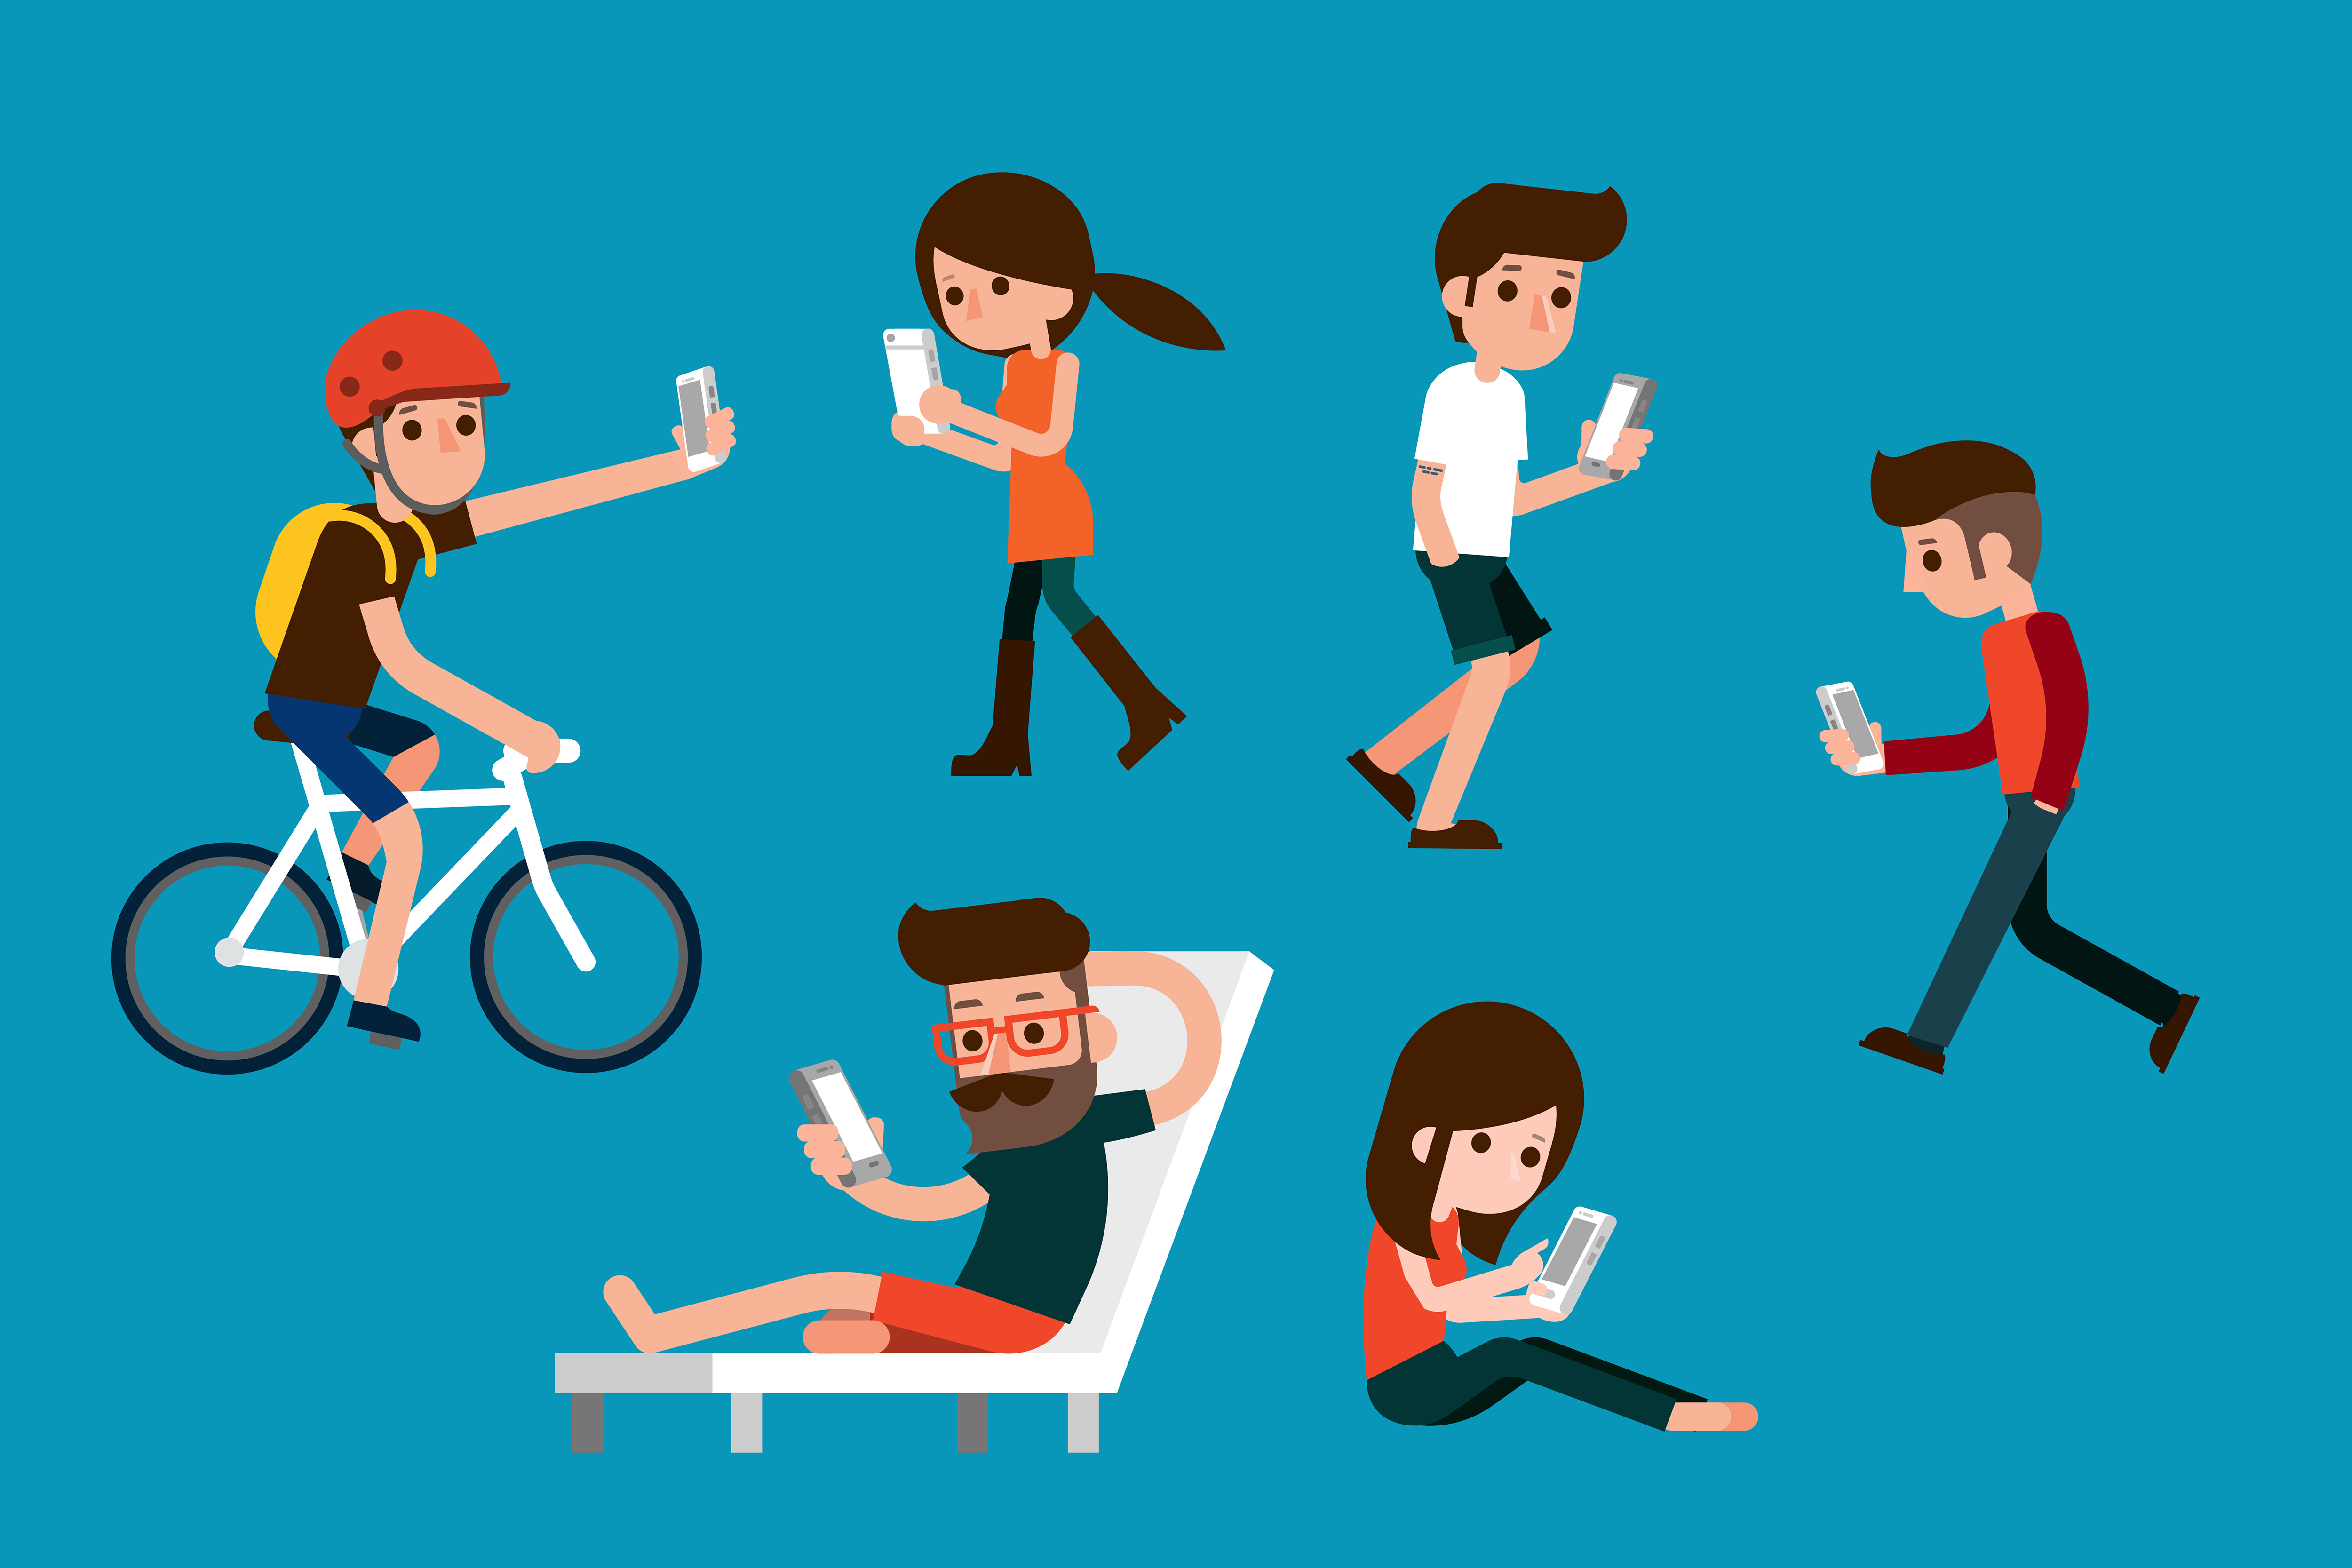 illustration of people on smartphones